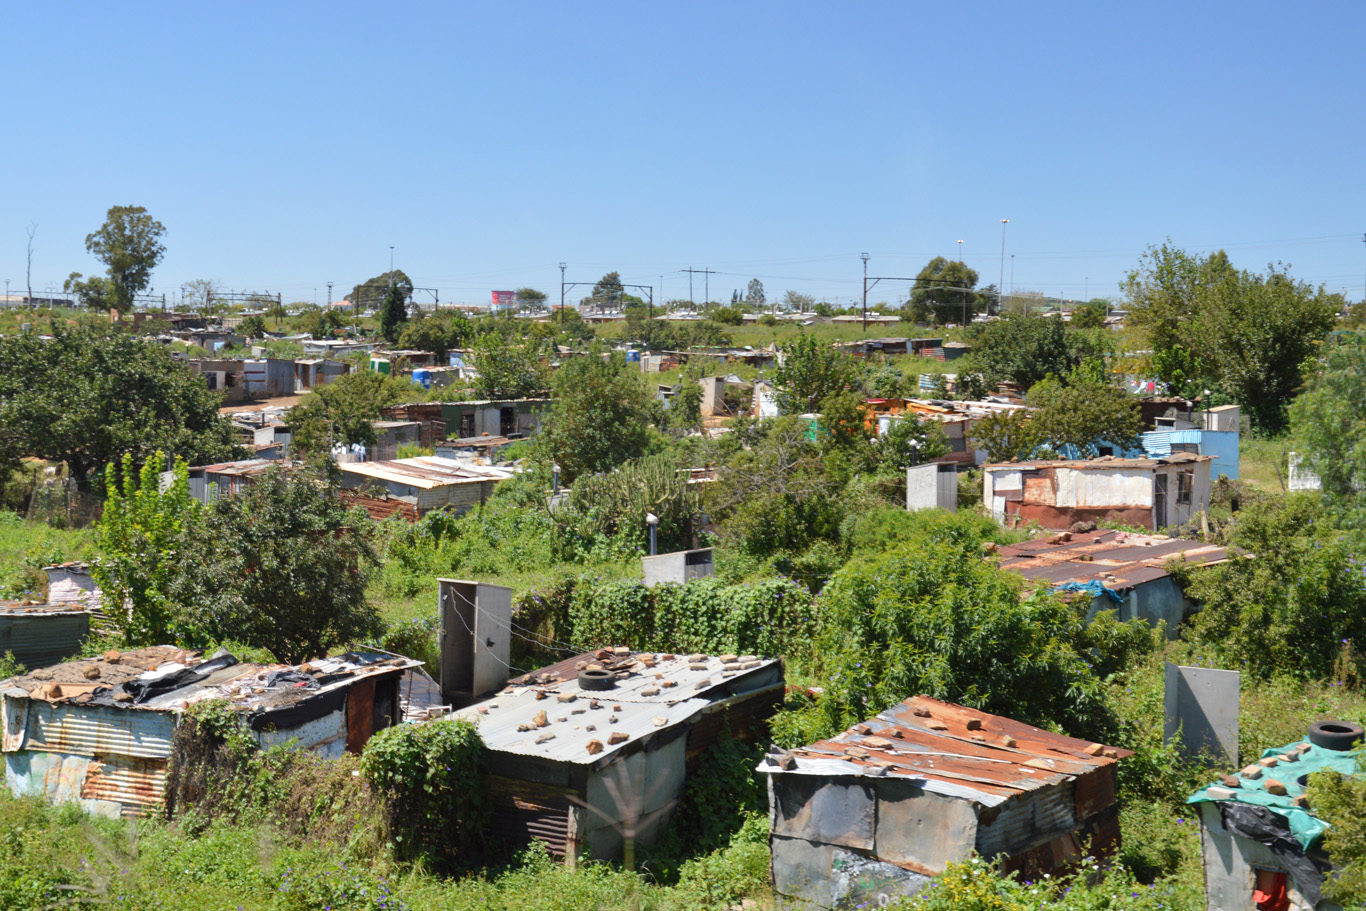 The houses of those most unfortunate in Soweto